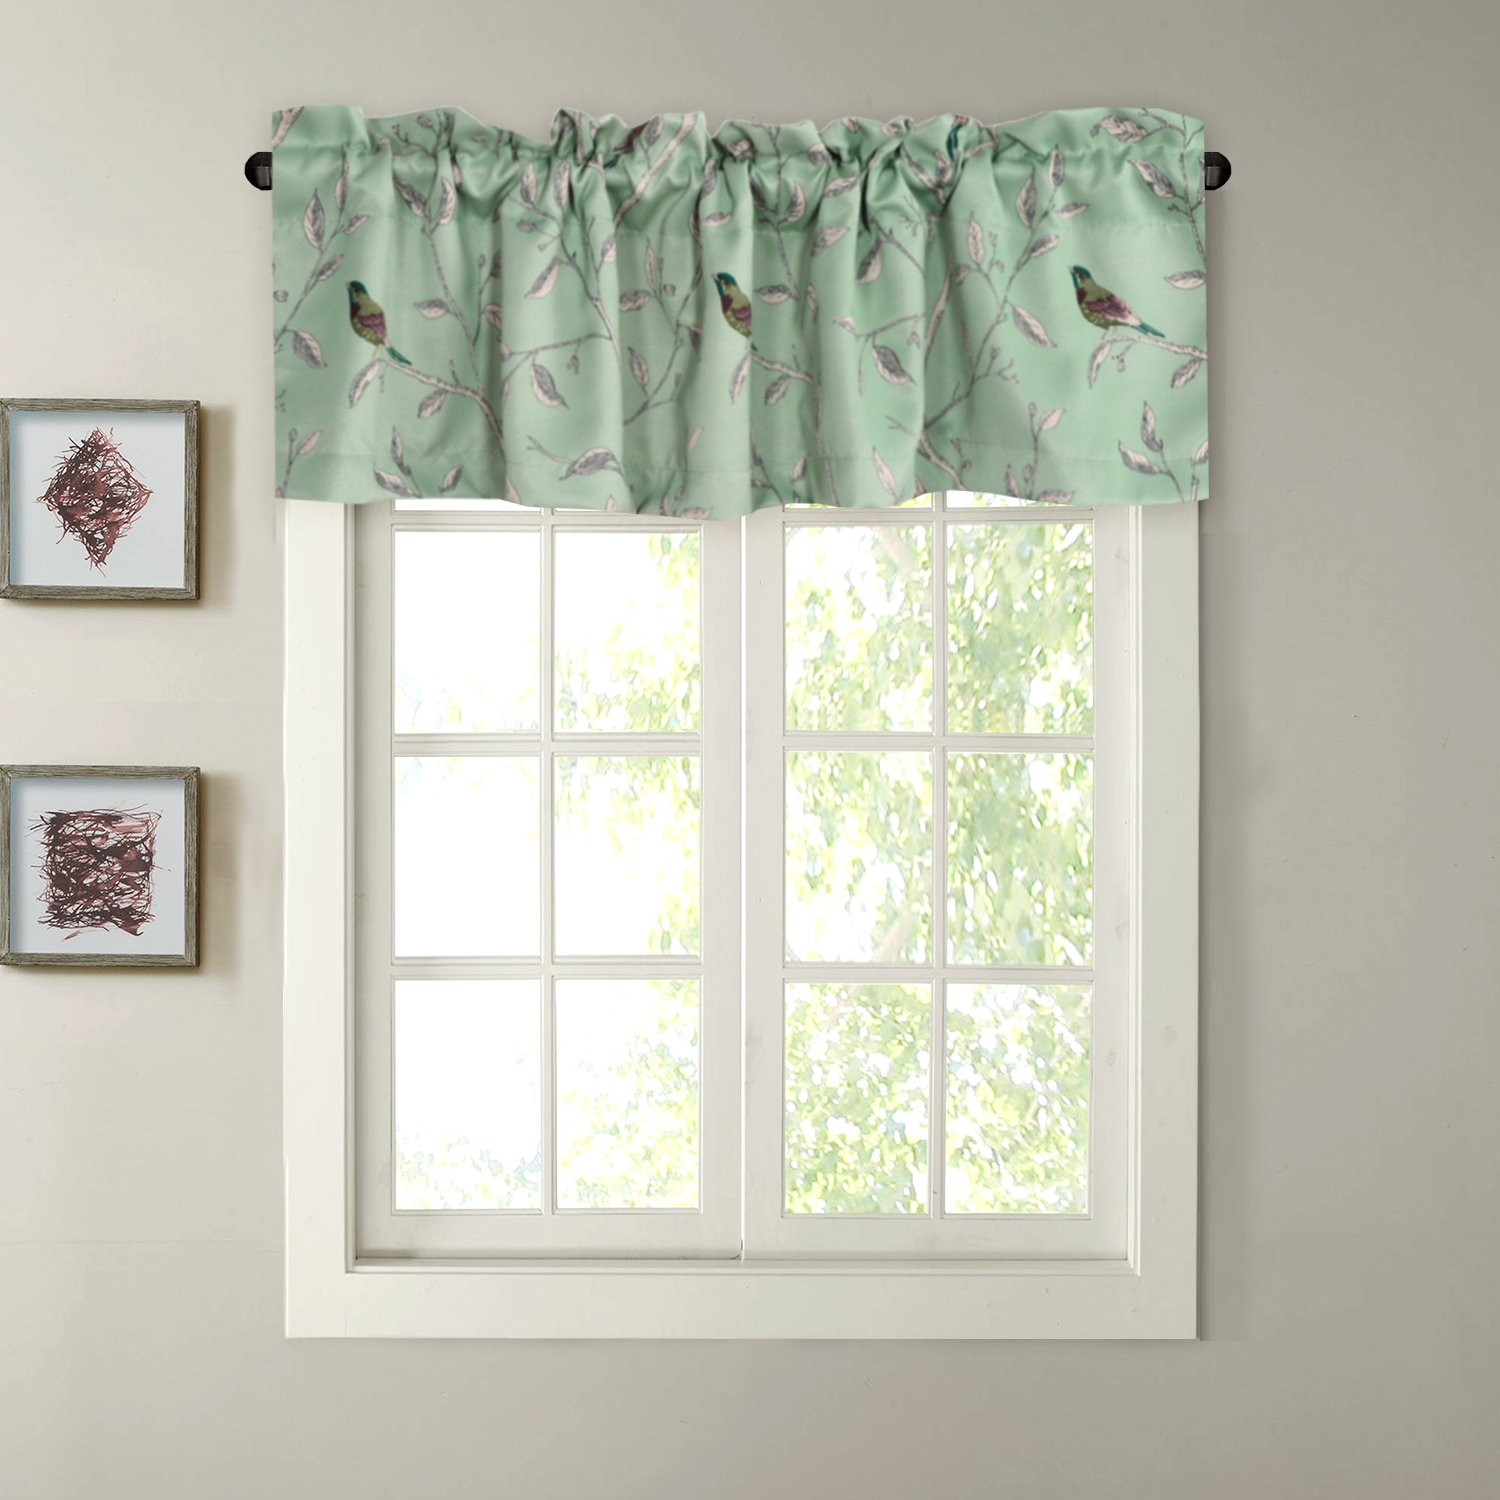 "H.VERSAILTEX Blackout Kitchen Bath Laundry Bedroom Living Room with Rod Pocket Top Window Curtain Valances - Sage Green with Turquoise Birds - 58"" W x 15"" L (1 Piece)"